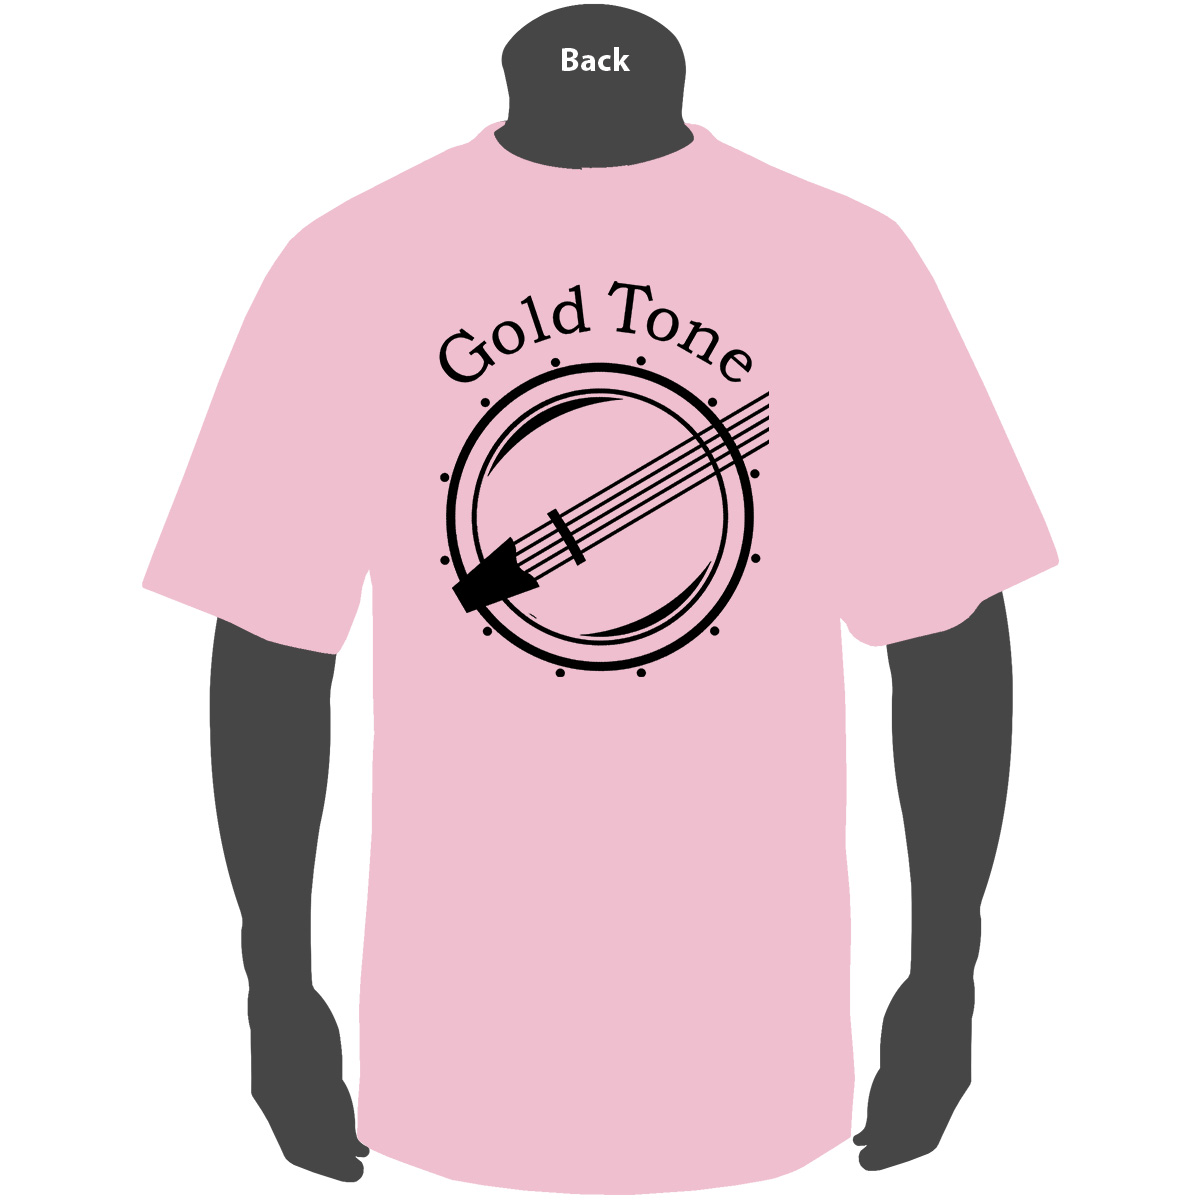 Gold Tone 'Classic' (Pink)